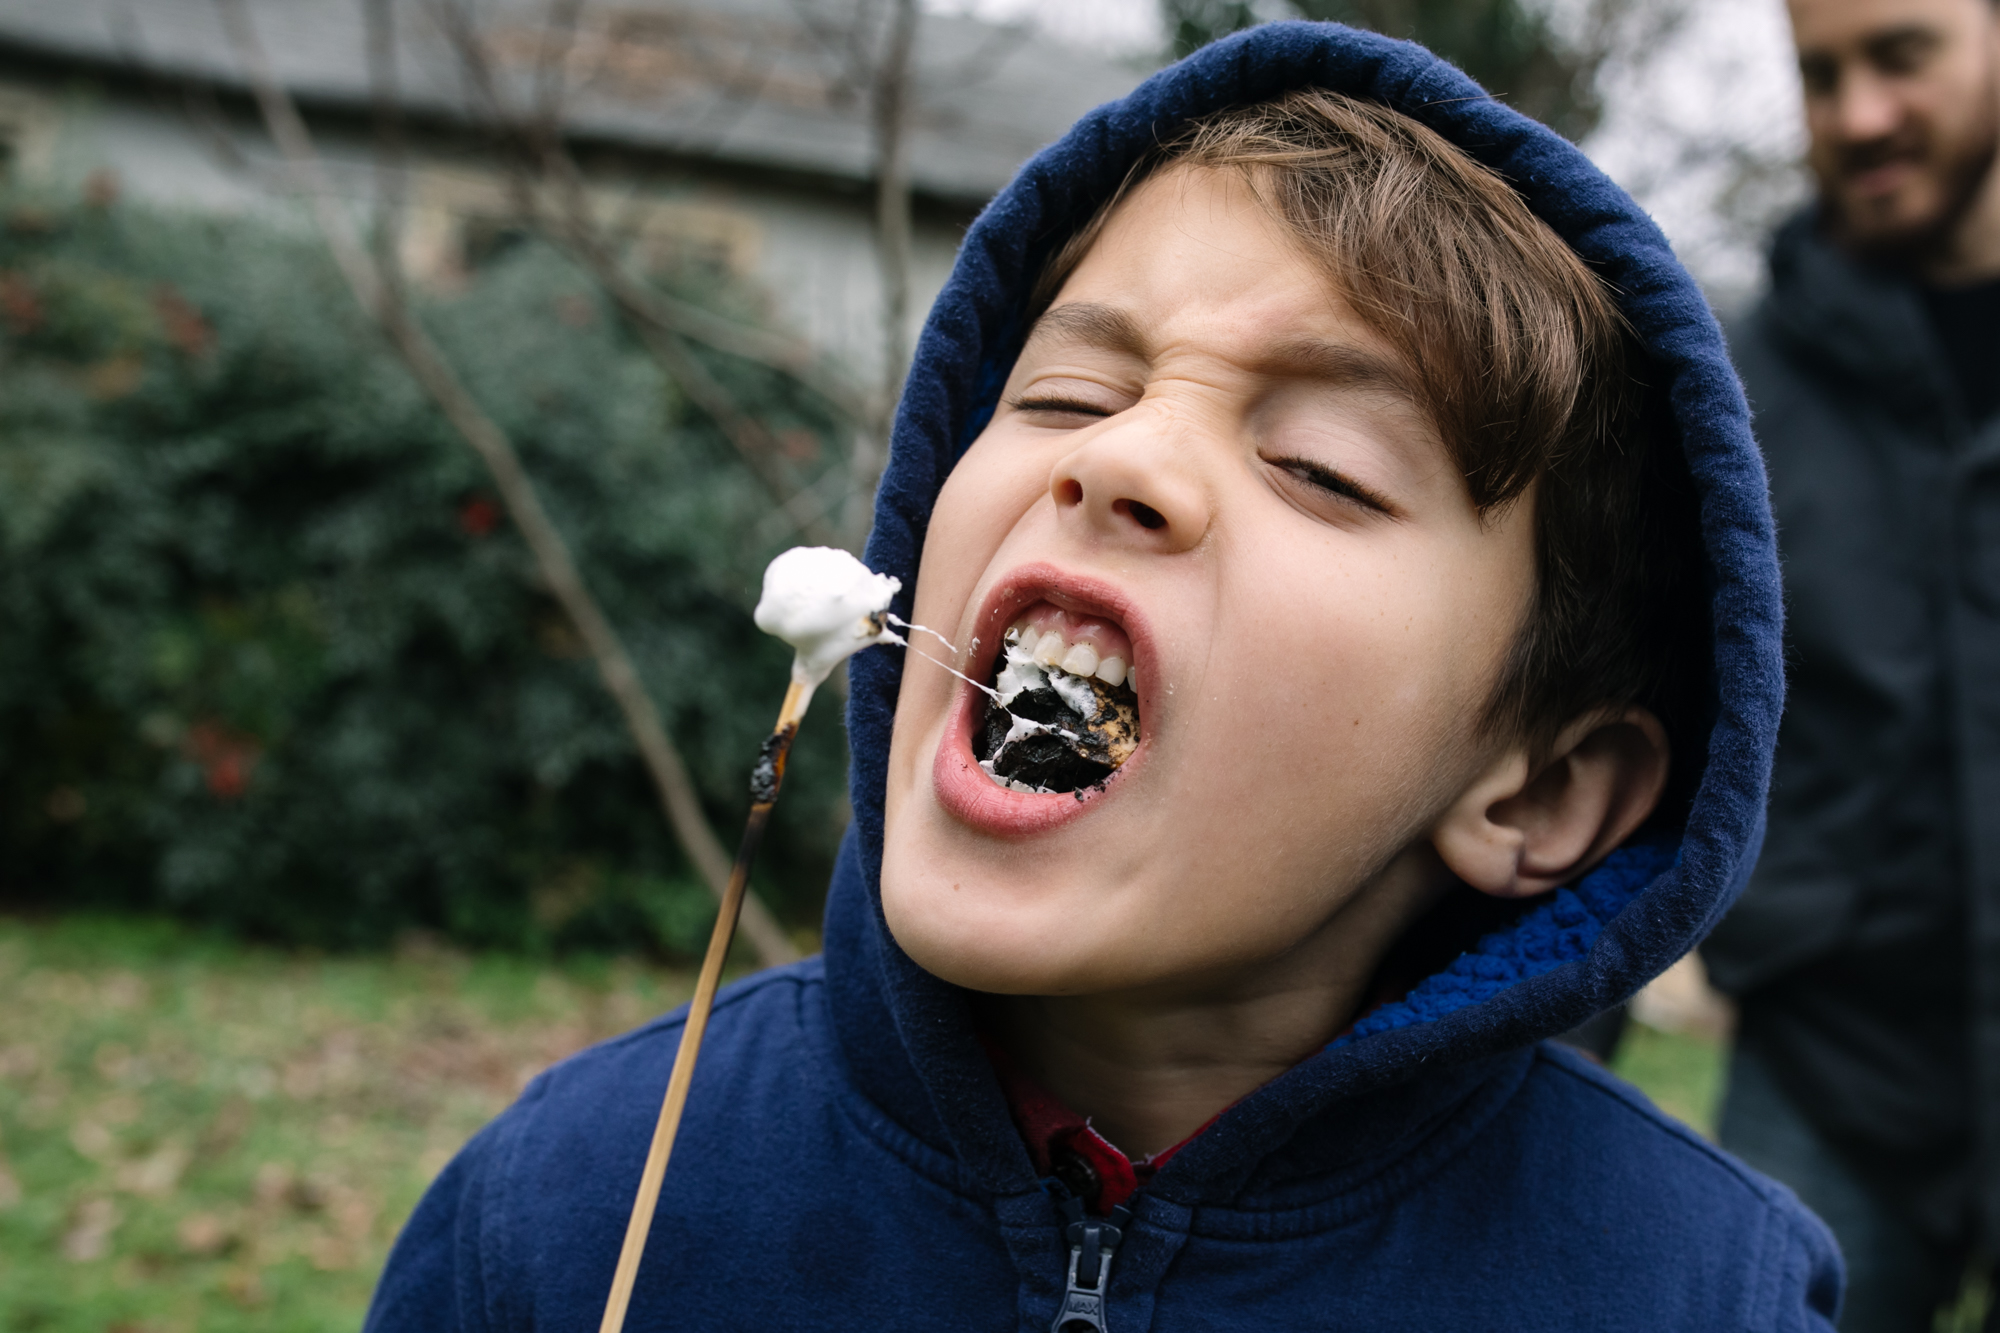 a boy bites a roasted marshmallow off of a stick